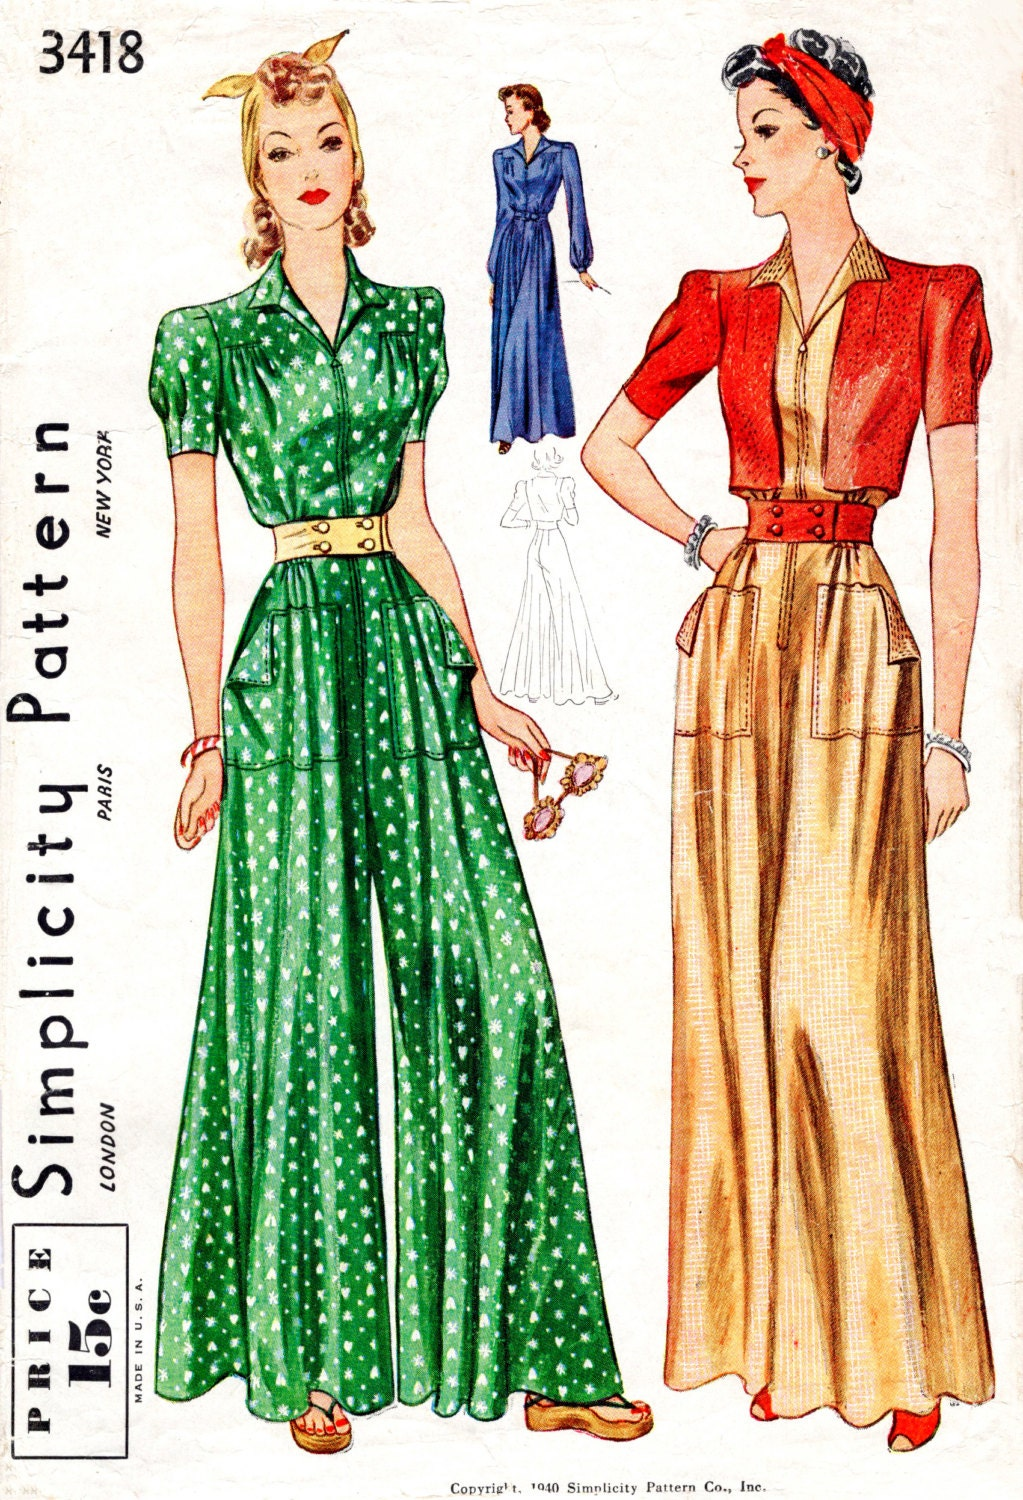 1930s 1940s Vintage Nähen Muster Reproduktion Overall Palazzo